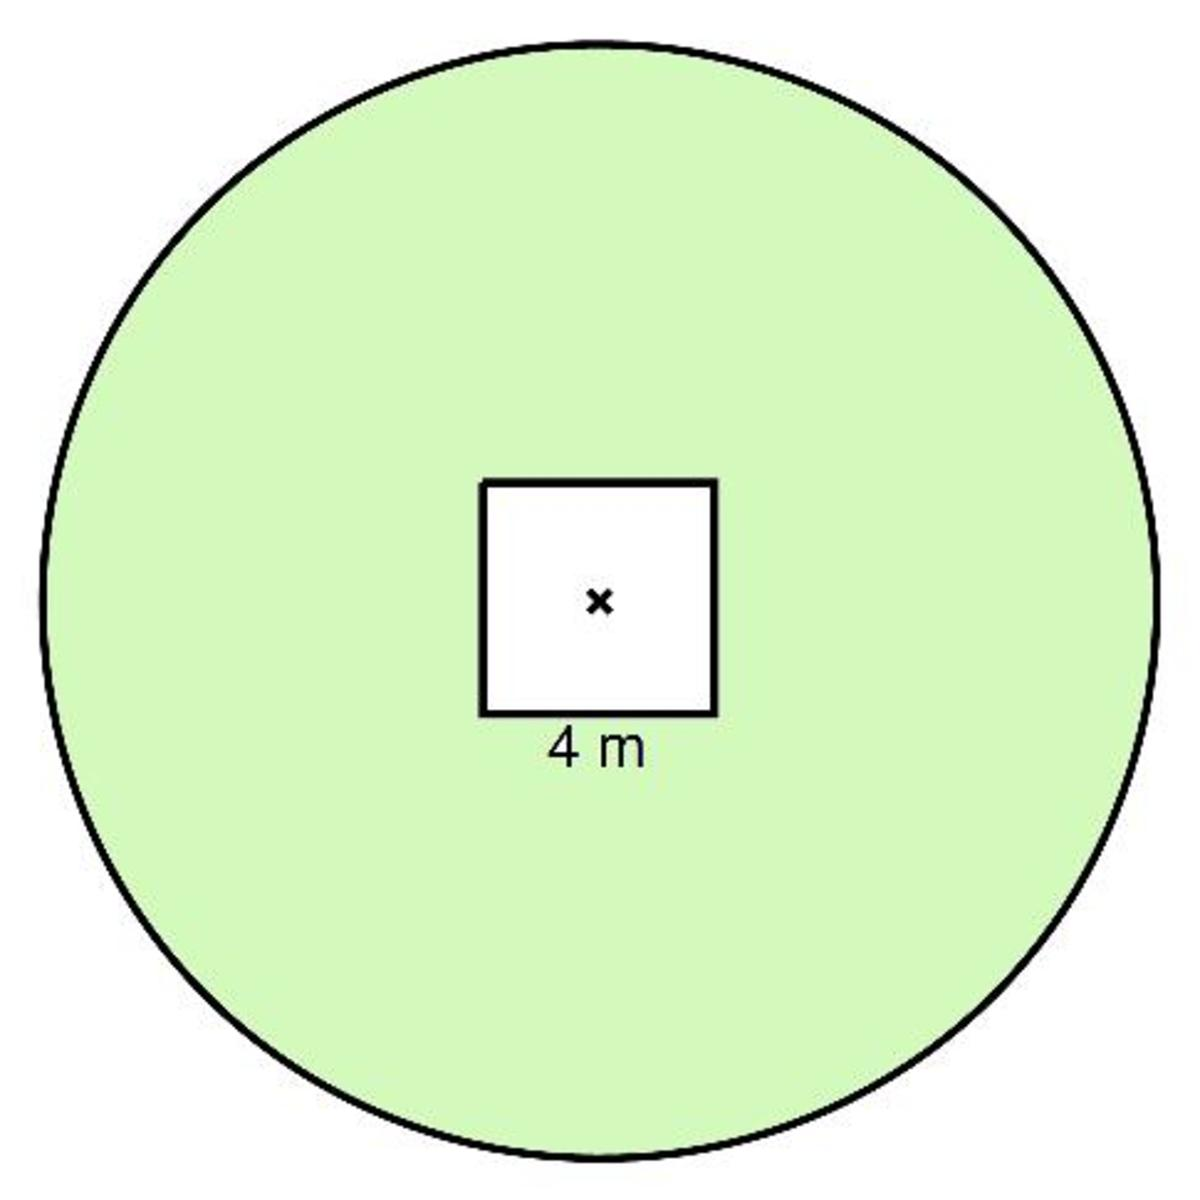 How To Calculate The Area Of A Composite Or Compound Shape